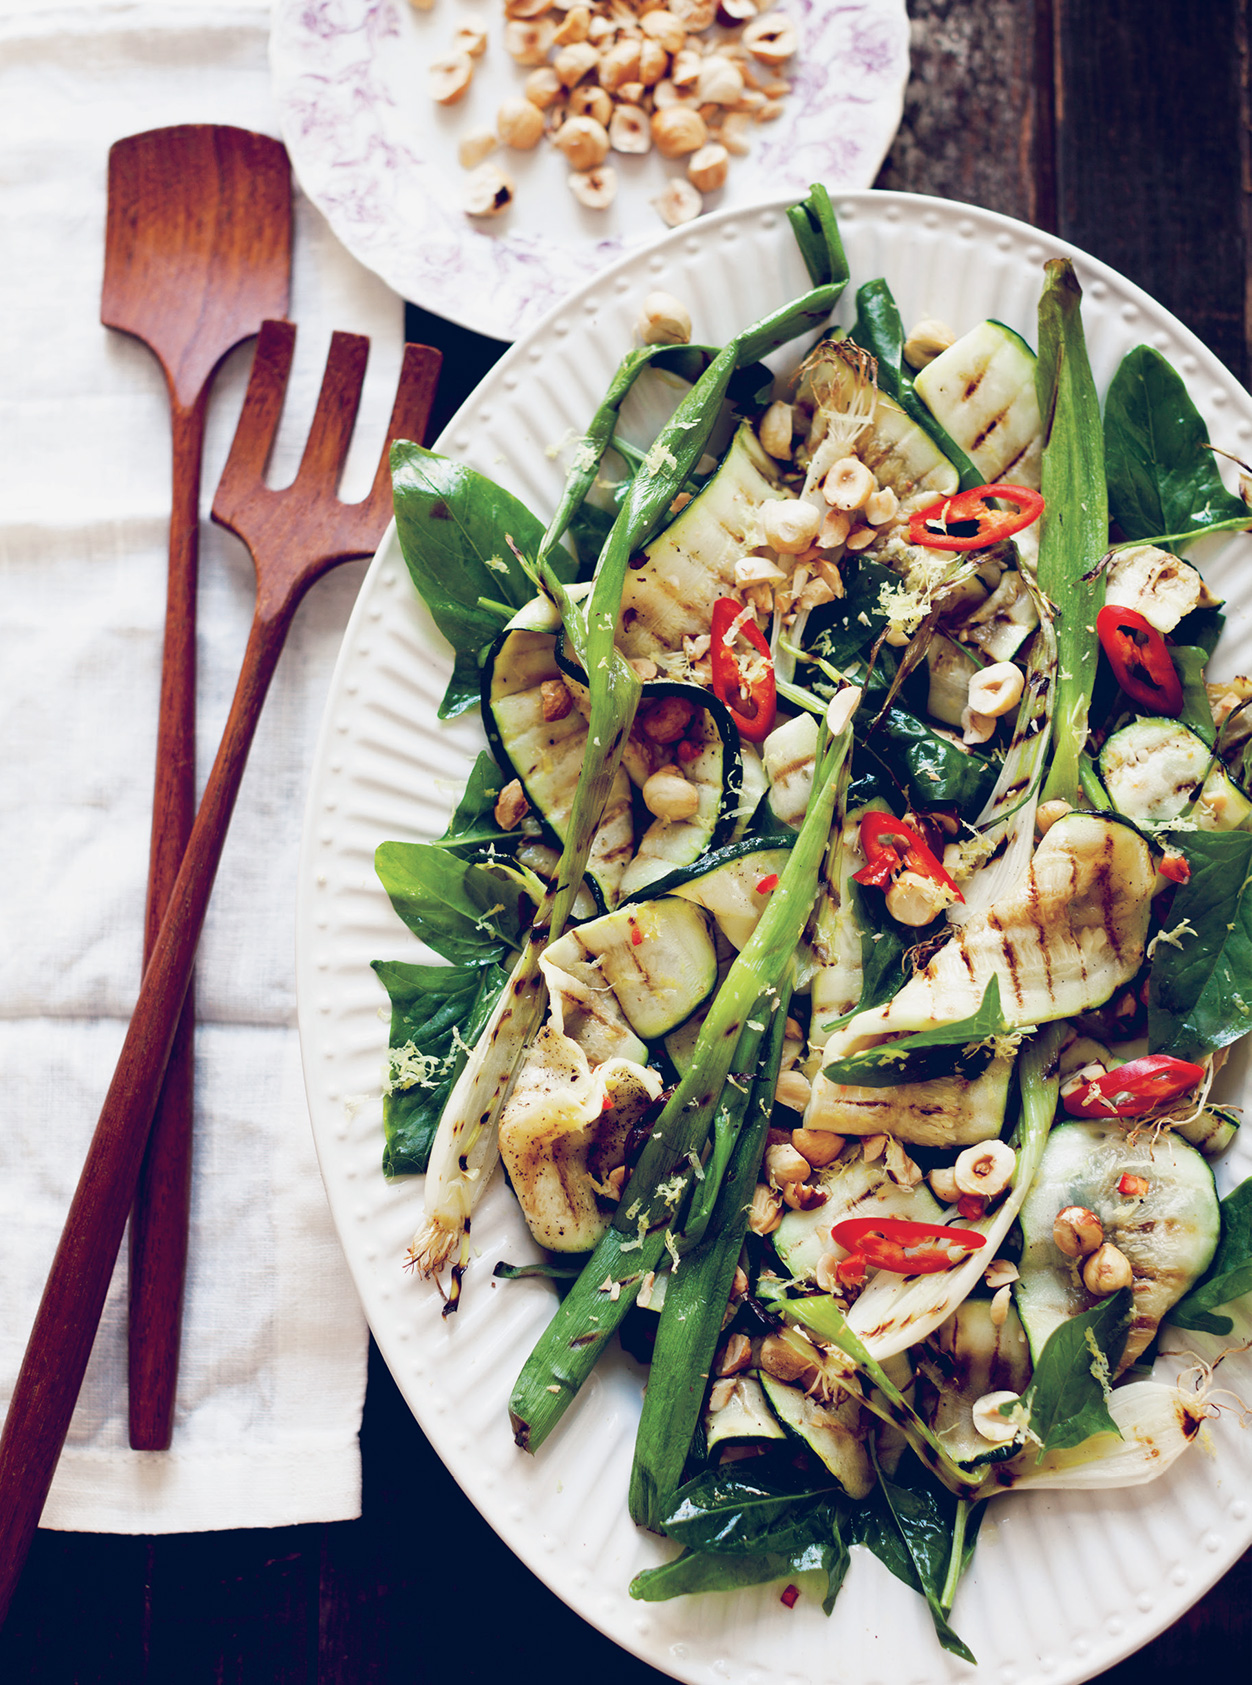 Sarah Britton's Grilled Courgette with Spring Onion and Hazelnut styled on a plate